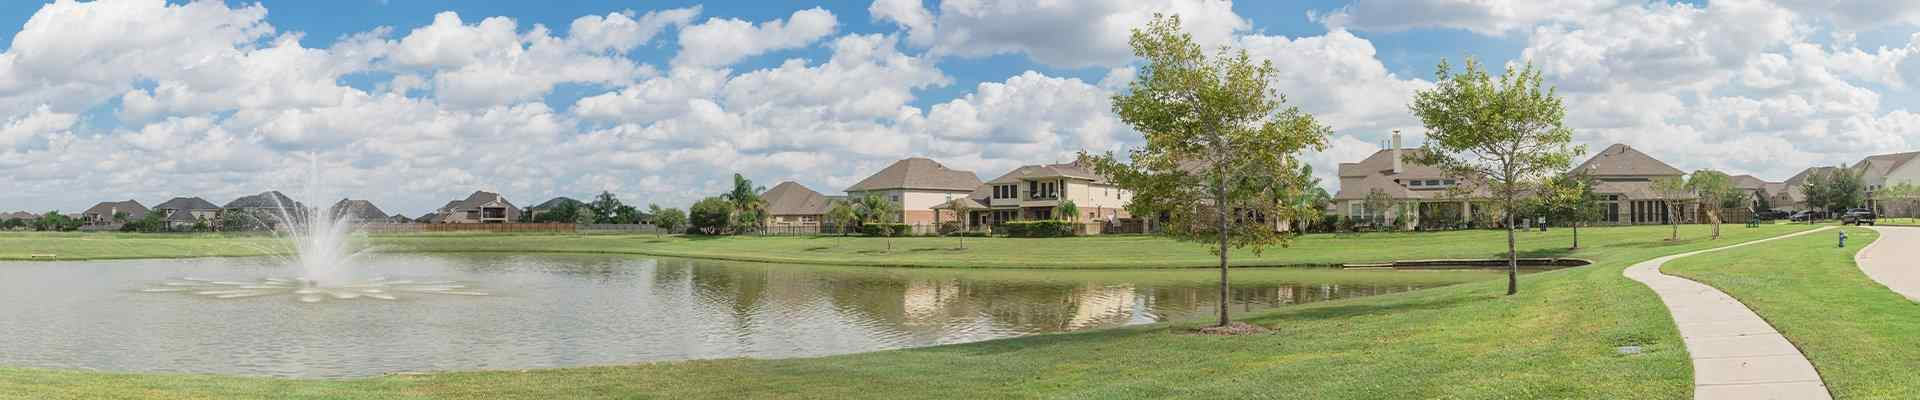 a view of a fountain and homes in fairview texas